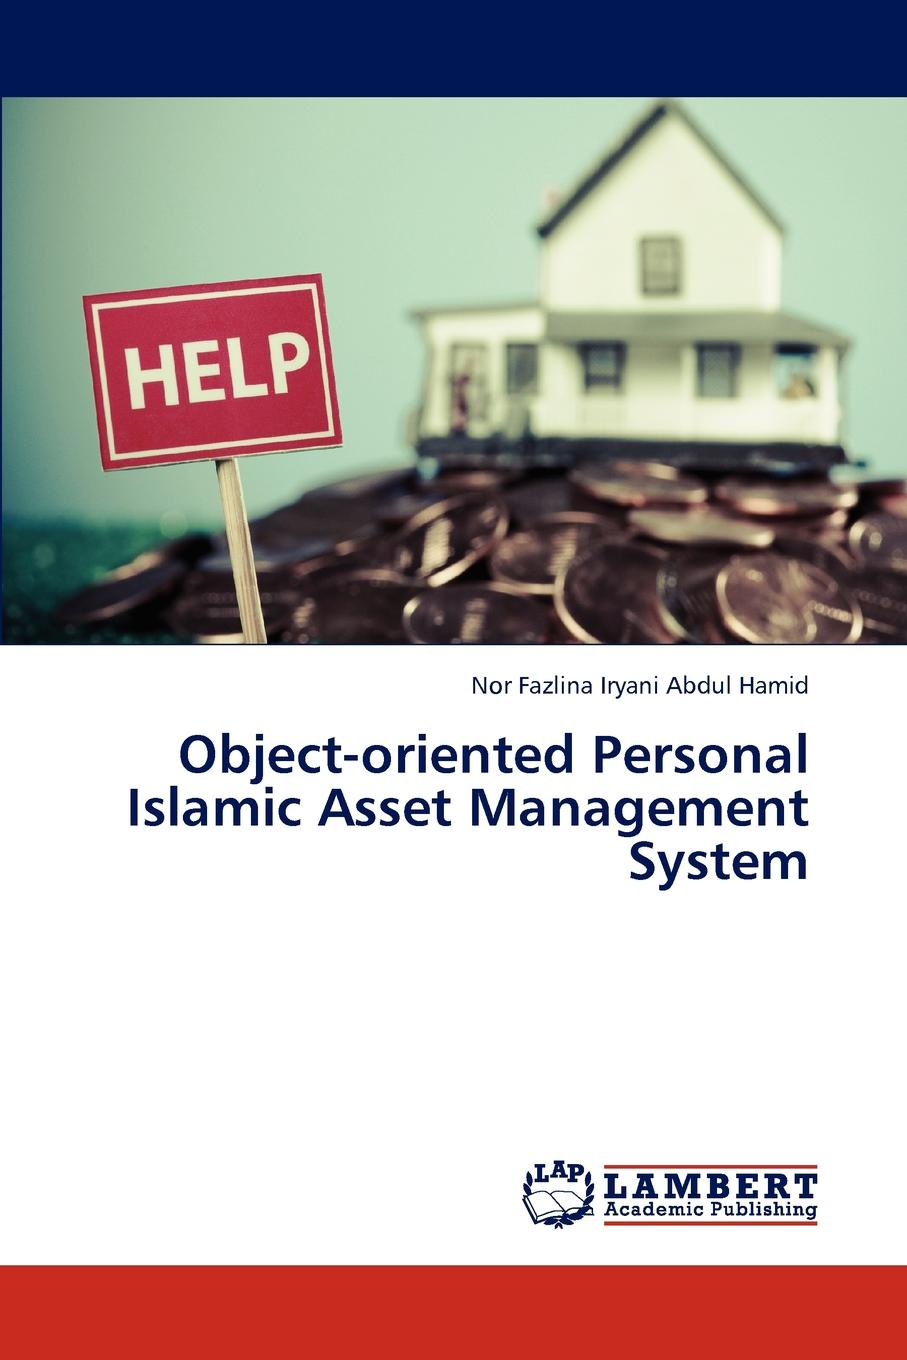 лучшая цена Nor Fazlina Iryani Abdul Hamid Object-oriented Personal Islamic Asset Management System